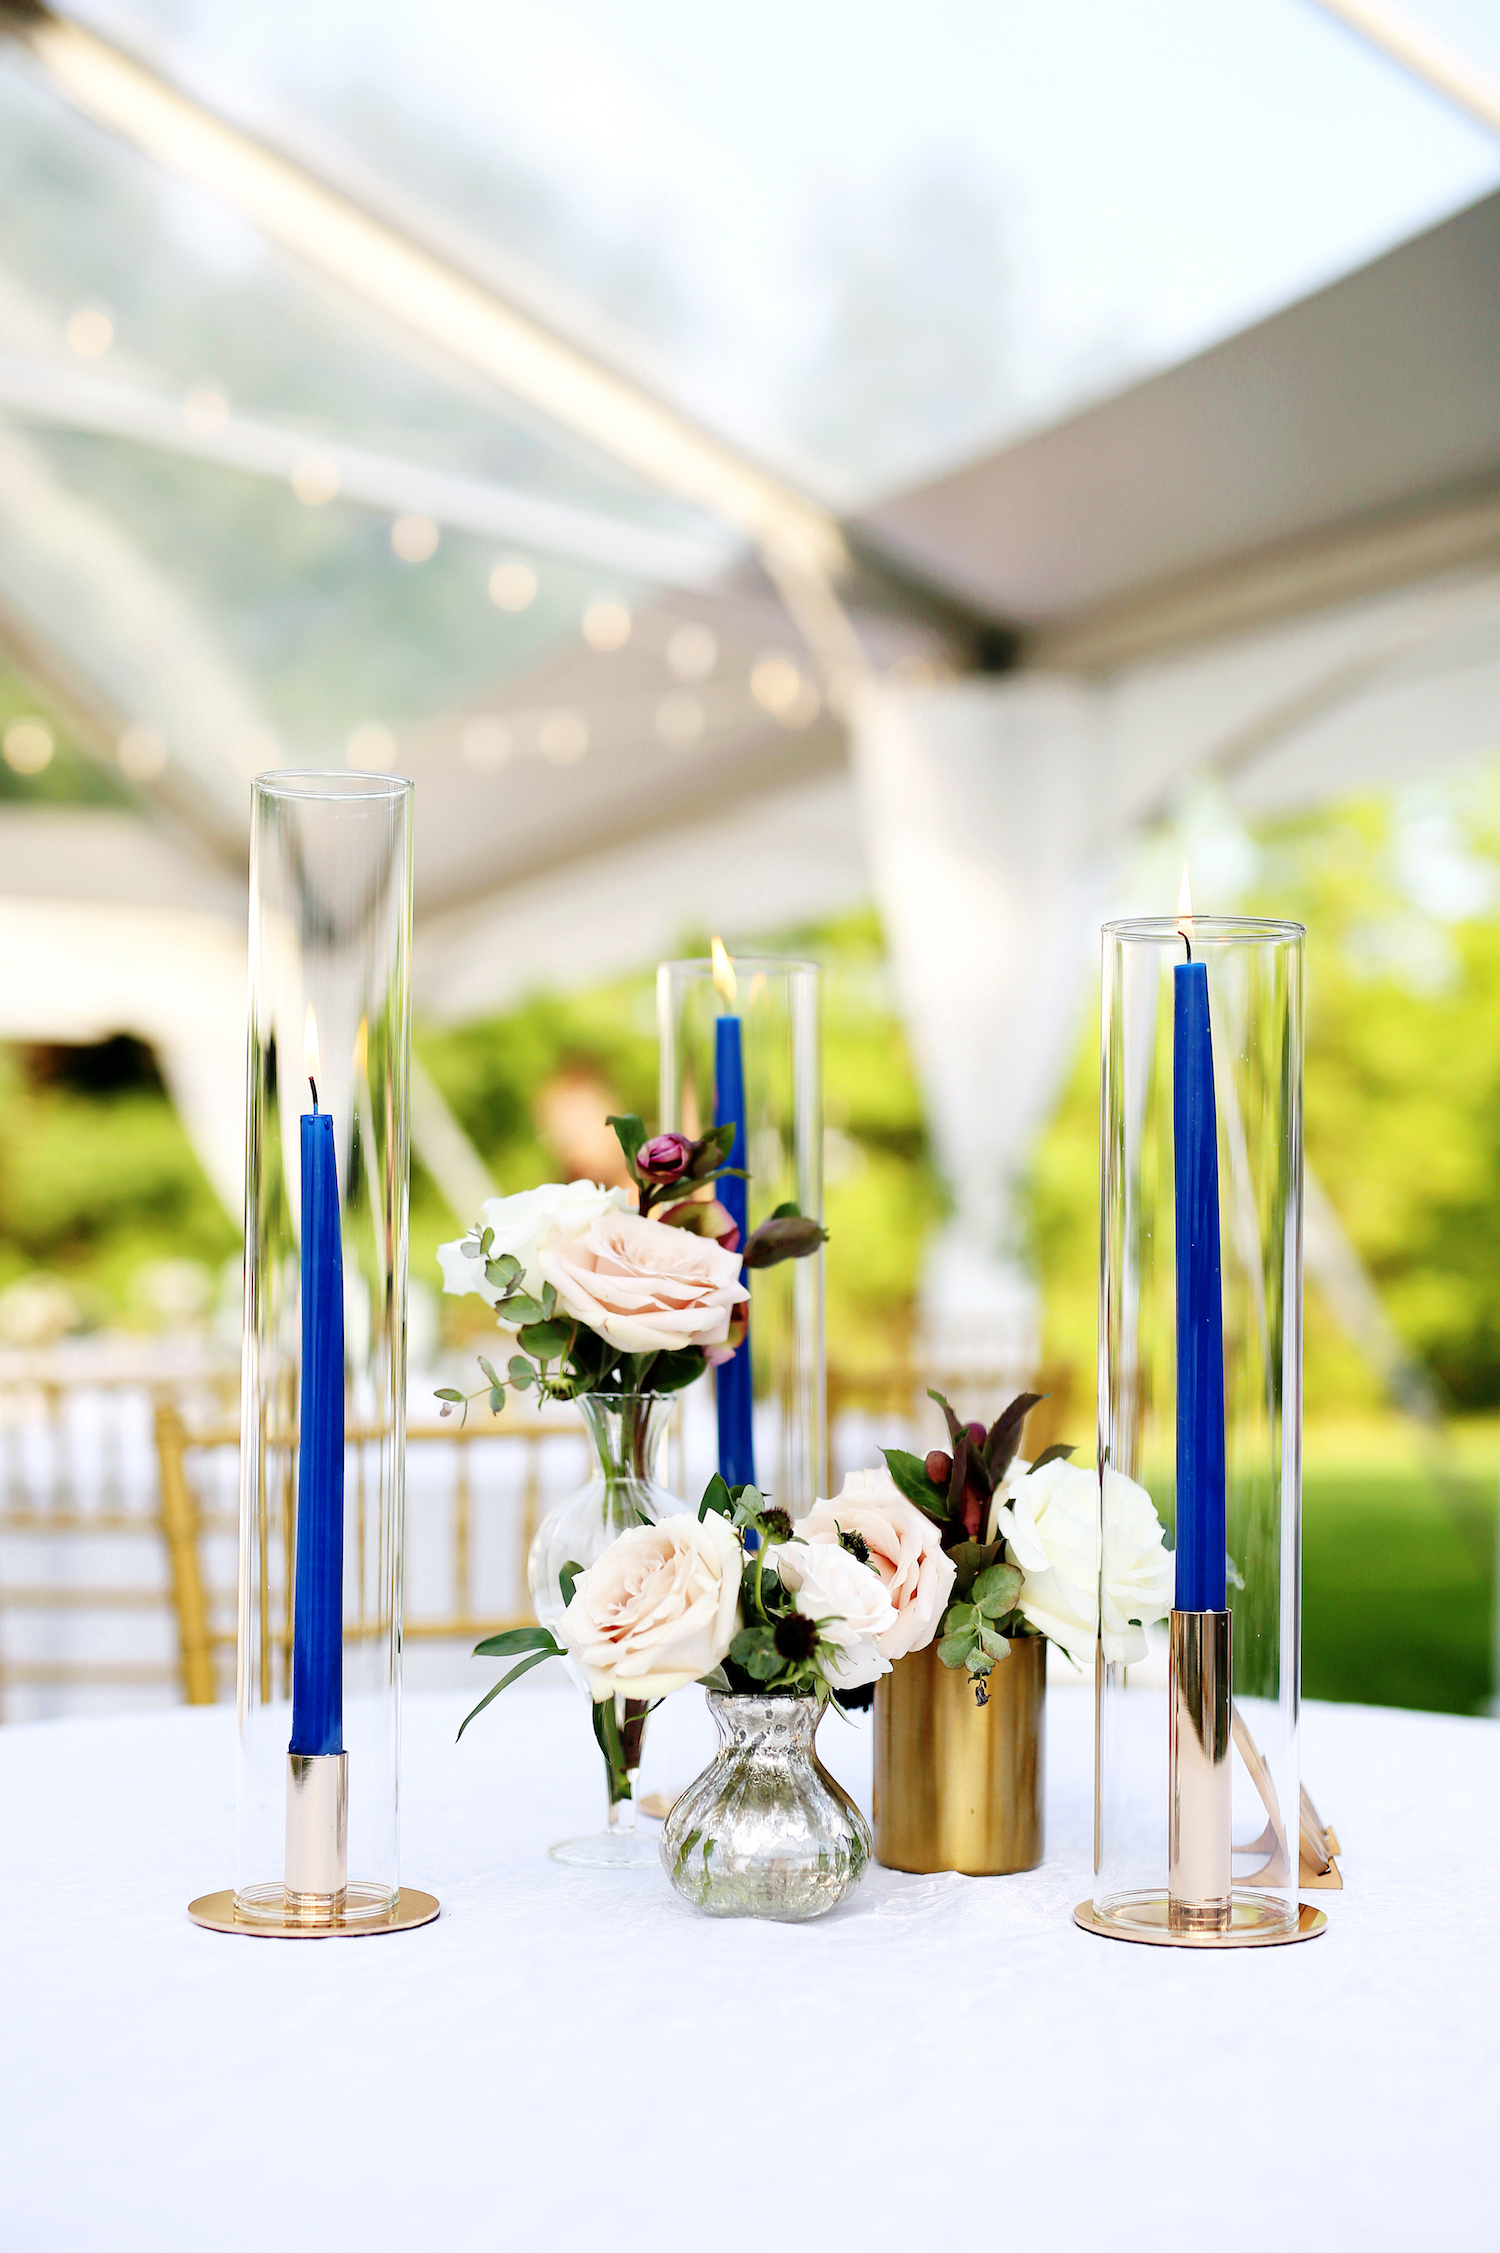 Table setup with candles and flowers